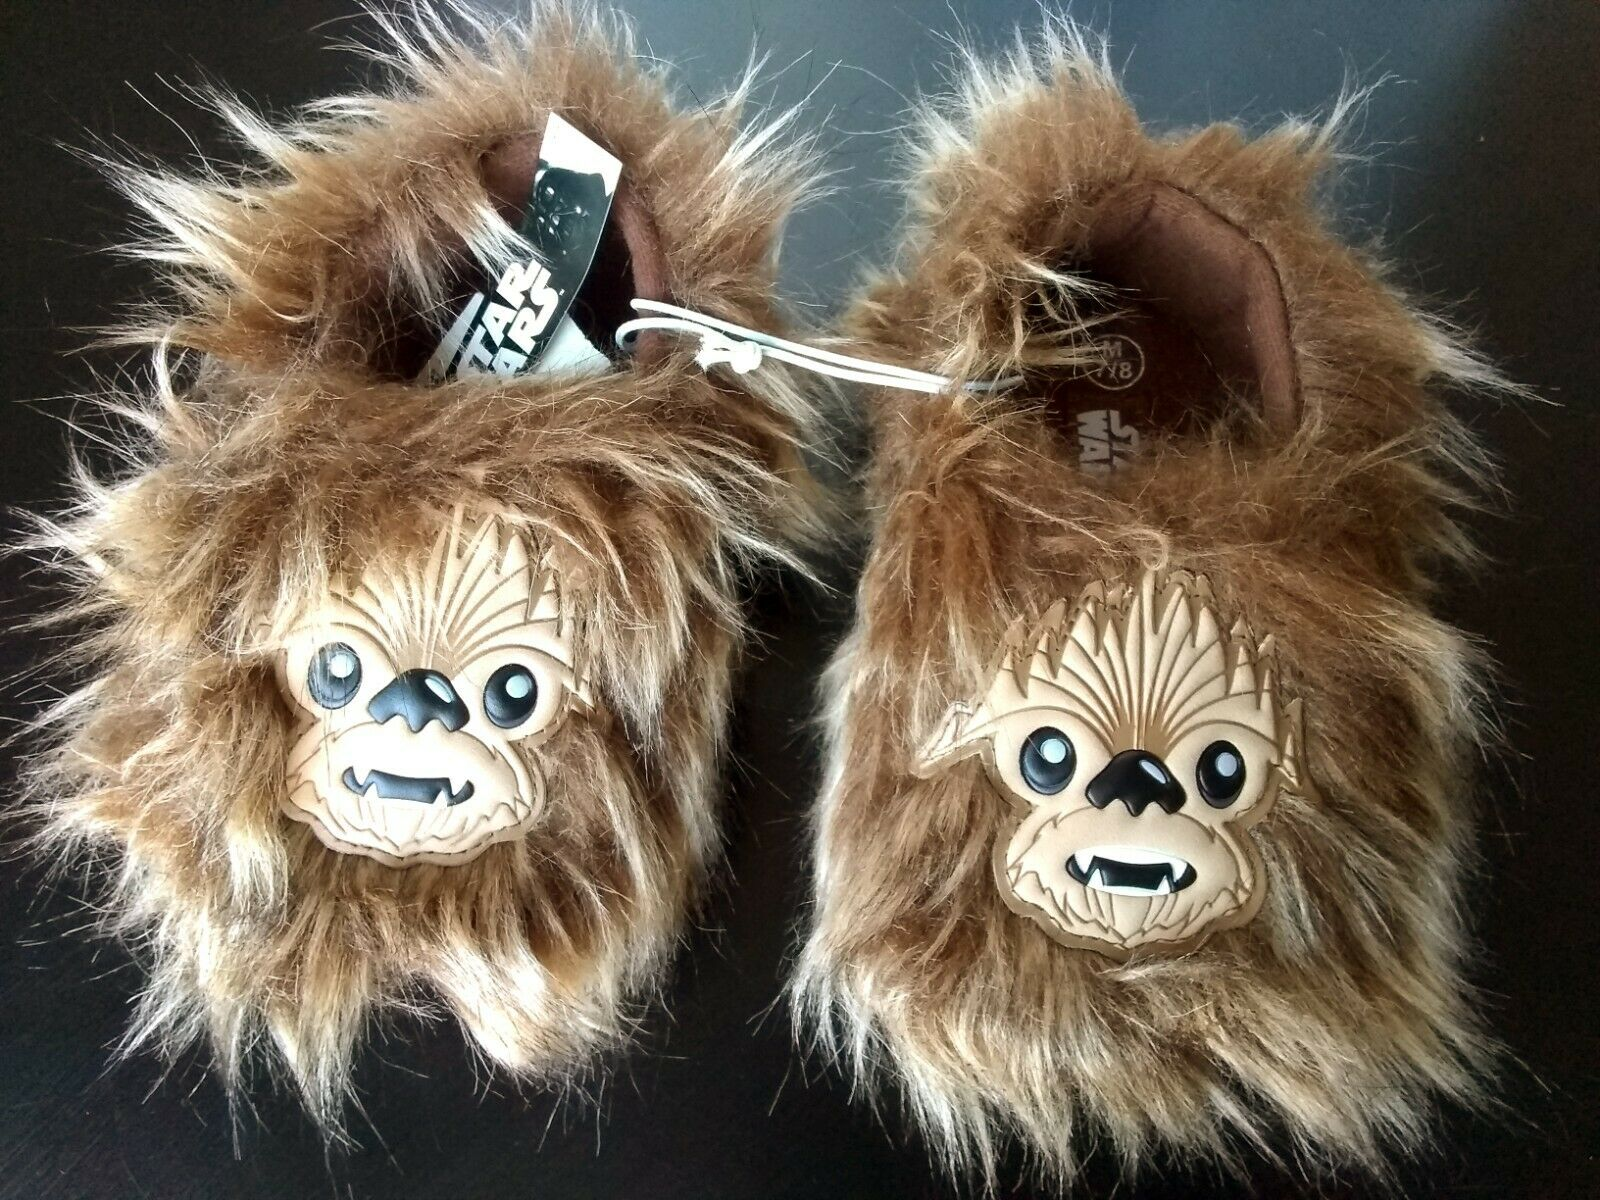 Chewbacca Wookie Slippers Fuzzy Furry Star Wars Kids Medium Size 7/8 Brown No Slip Bottom